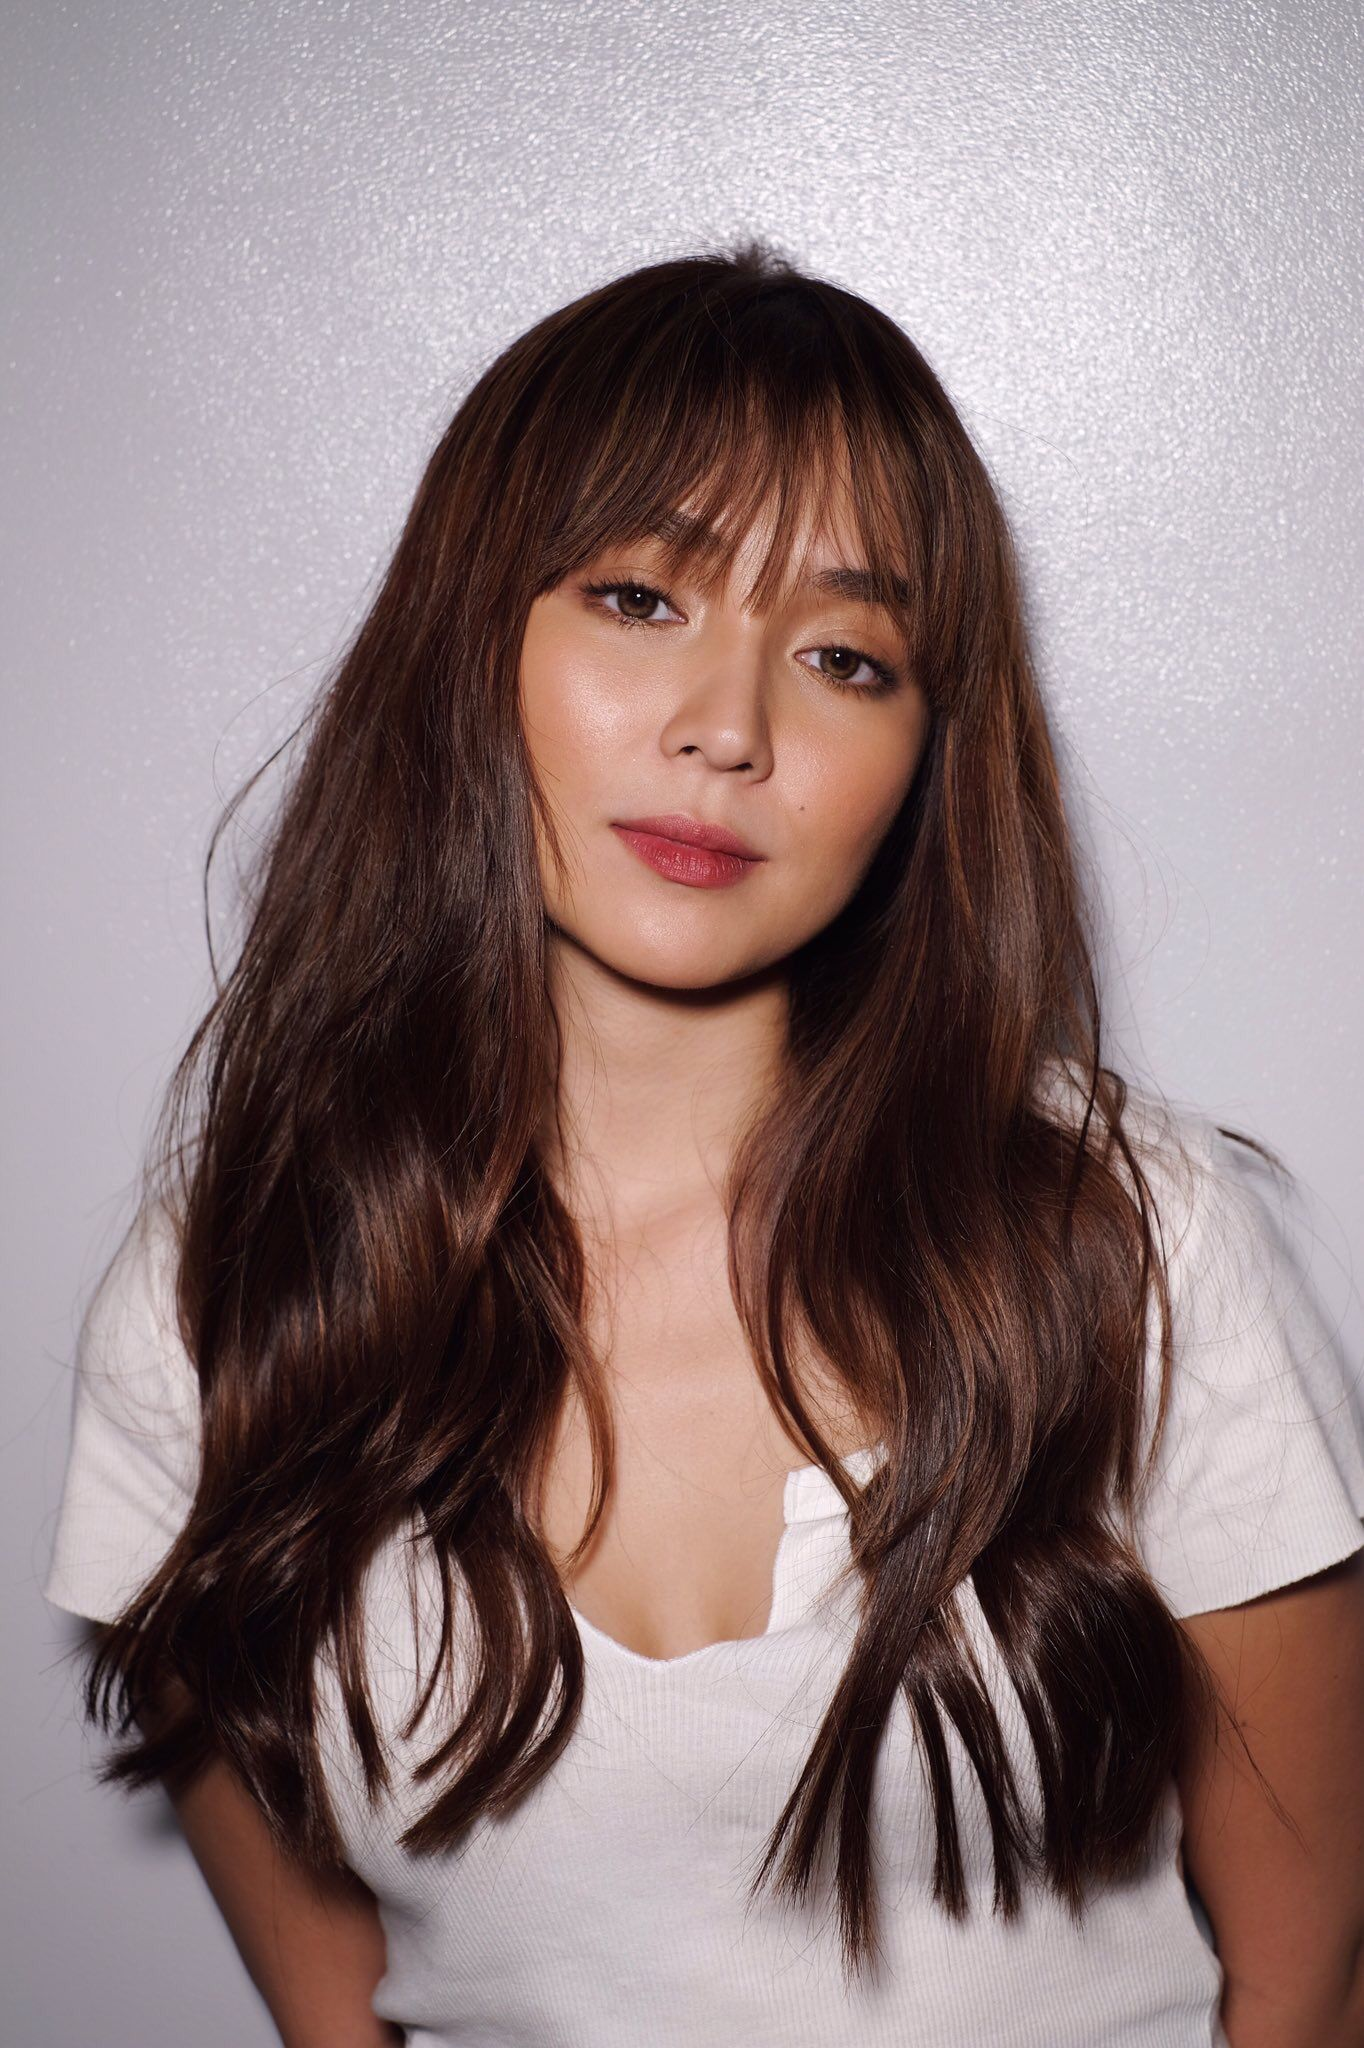 Pin By Sheila Eufemiano On Kathryn Bernardo Kathryn Bernardo Hairstyle Kathryn Bernardo Photoshoot Hairstyle